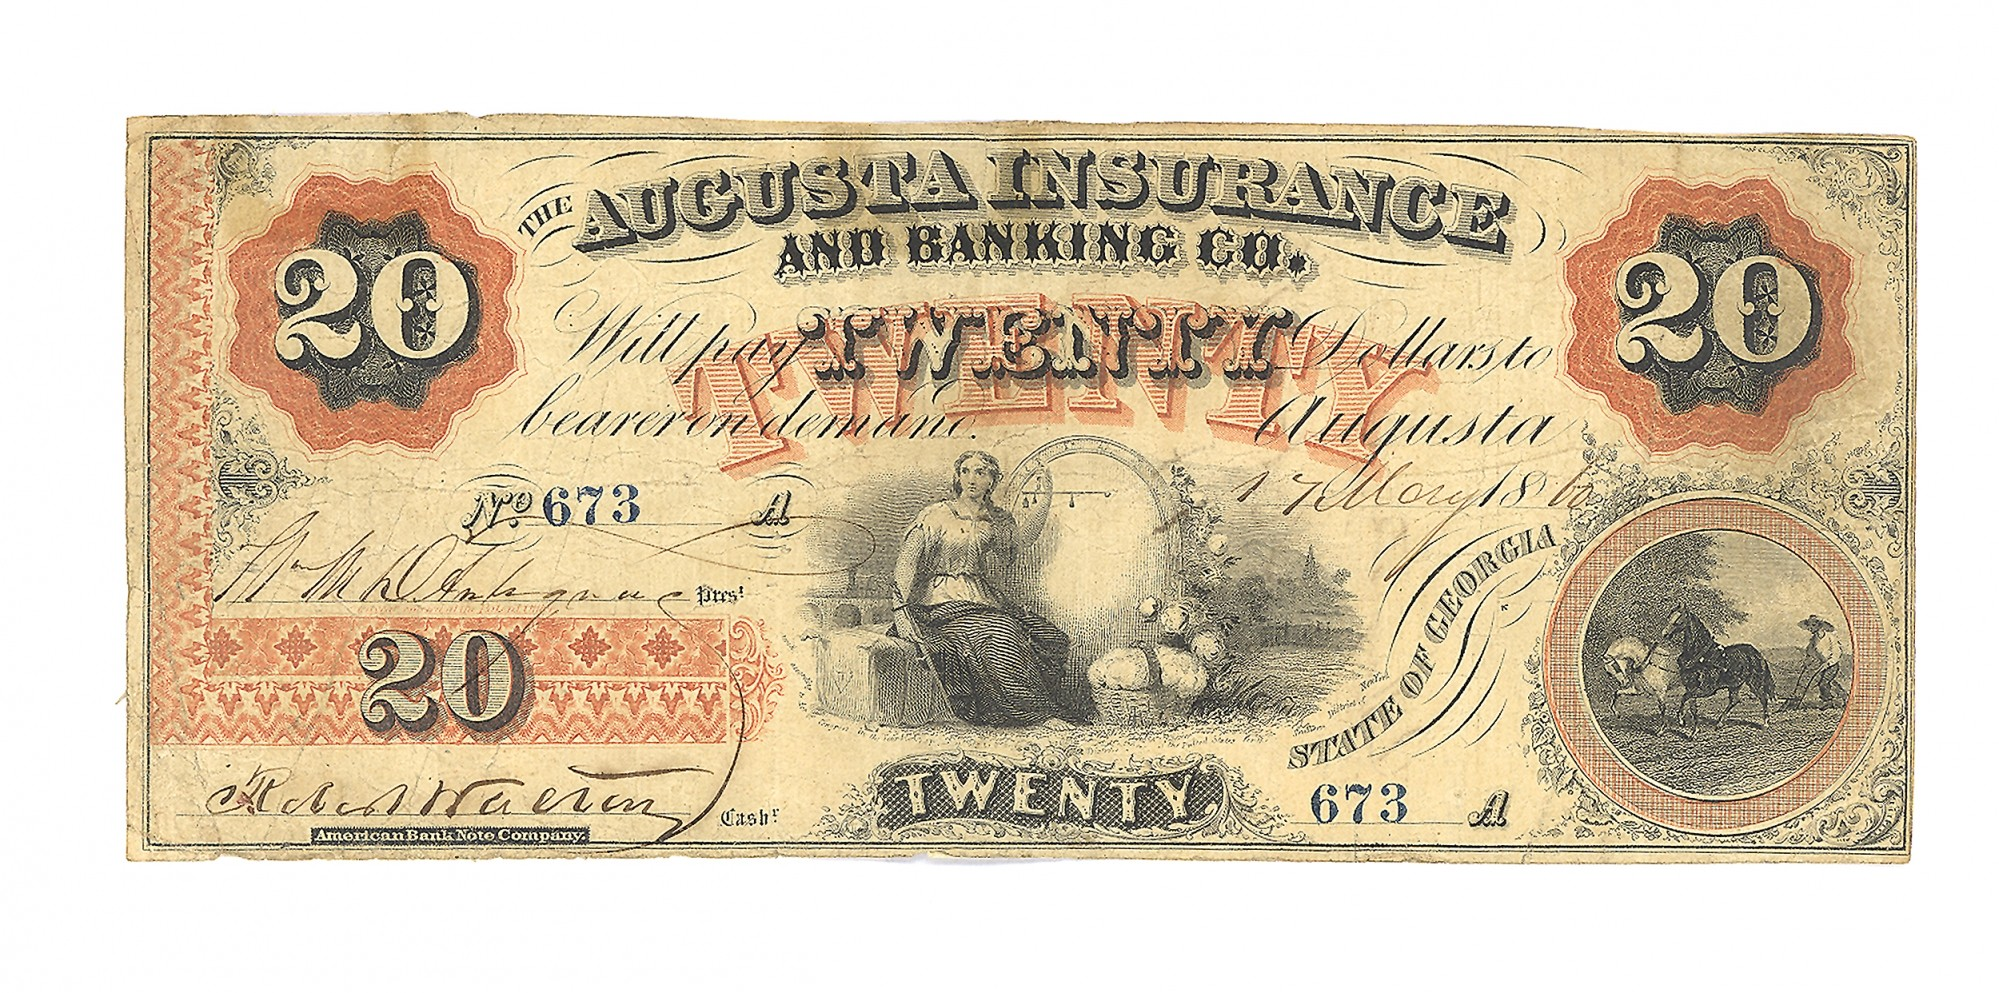 BANK OF COMMERCE, GEORGIA, $1 NOTE